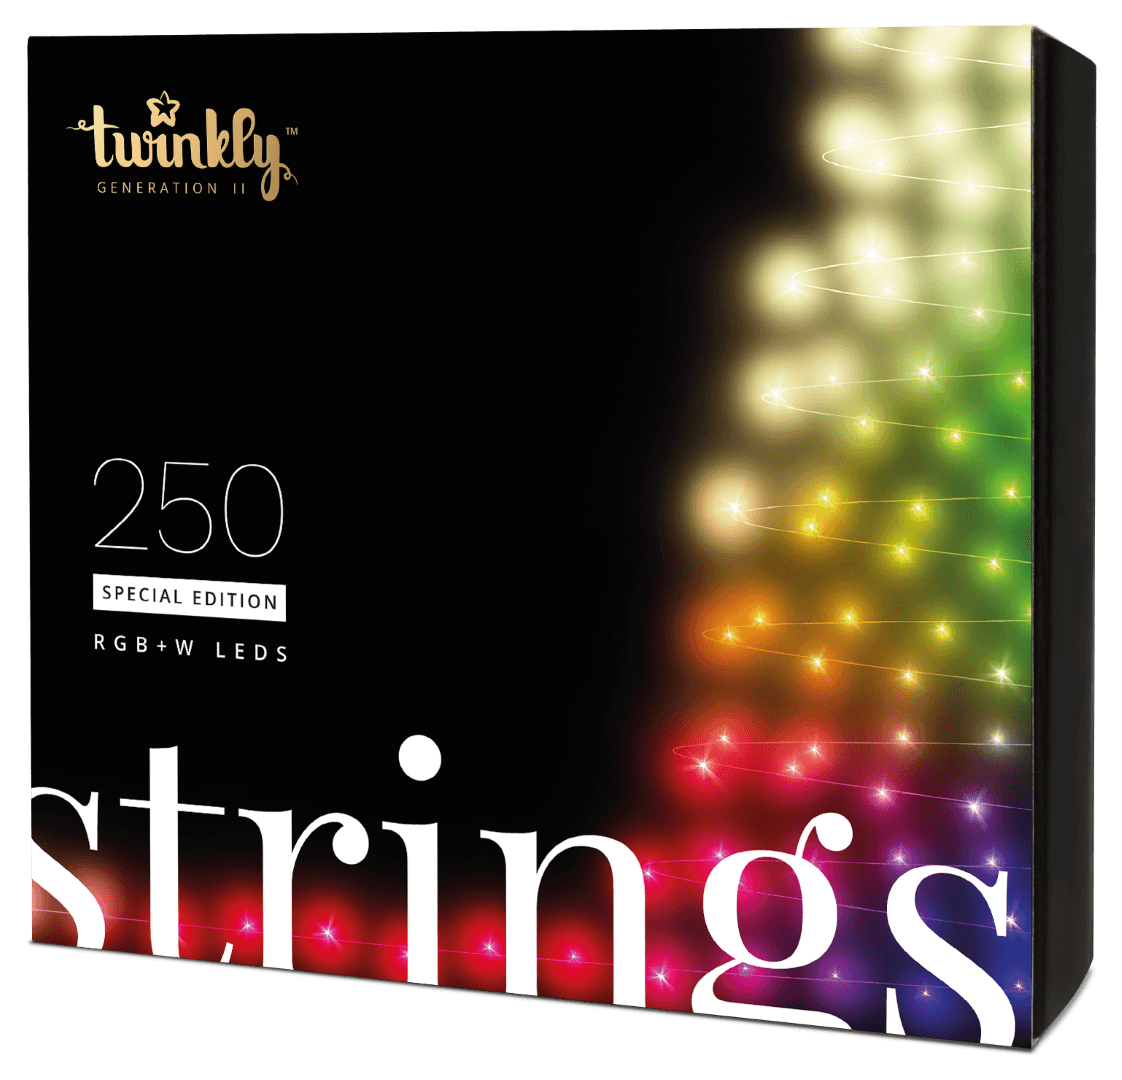 Twinkly Special Edition - 250 RGB W LEDs Lights String - Generation II